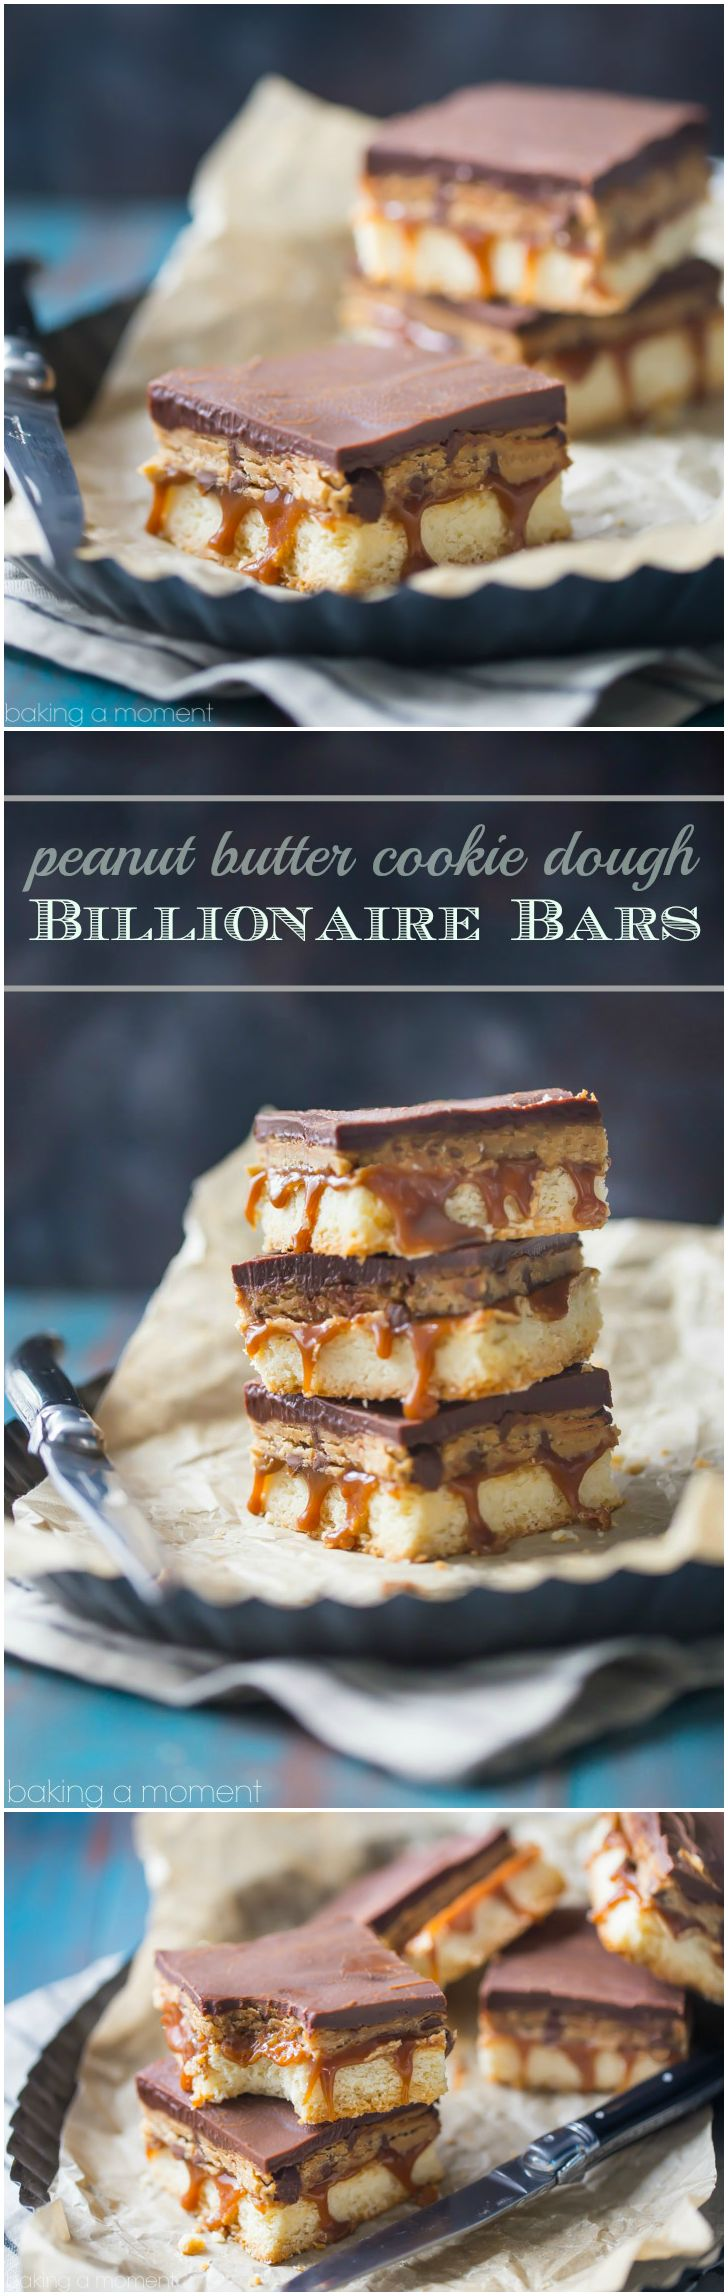 Peanut Butter Cookie Dough Billionaire Bars- buttery shortbread topped with gooey caramel, peanut butter cookie dough, and chocolate ganache. Swoon!